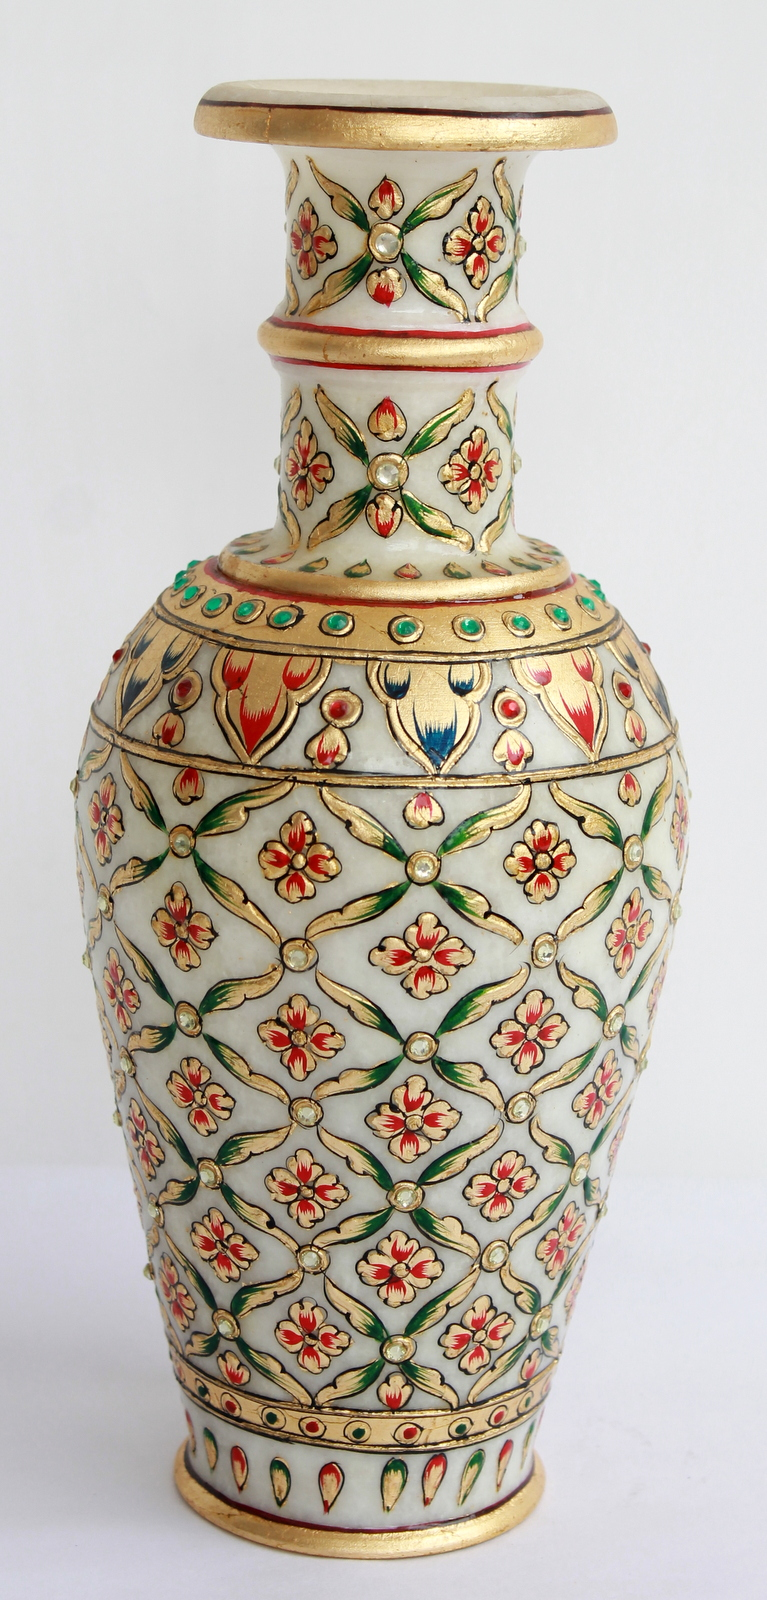 Marble Vases Gold Painted Online Shopping India Buy Handicraftsgifts Crafts Home Decor Decorative Indian Handicrafts Paintings